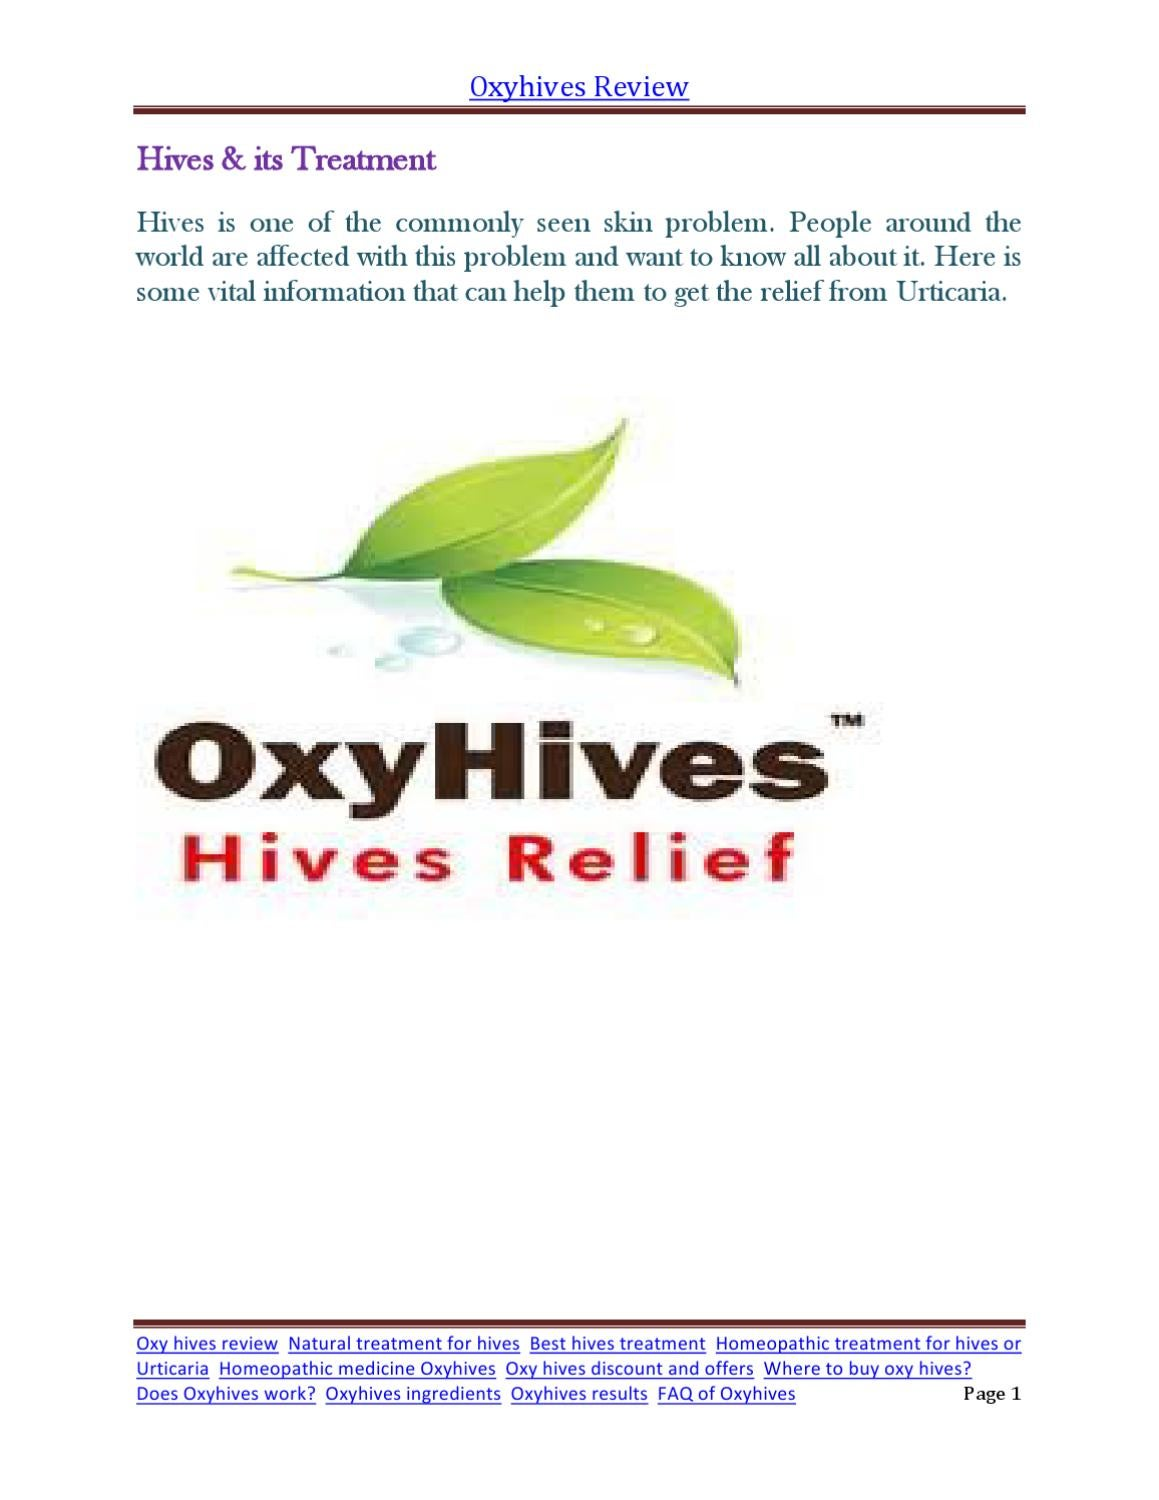 Oxyhives Review By Caroline Brown Issuu